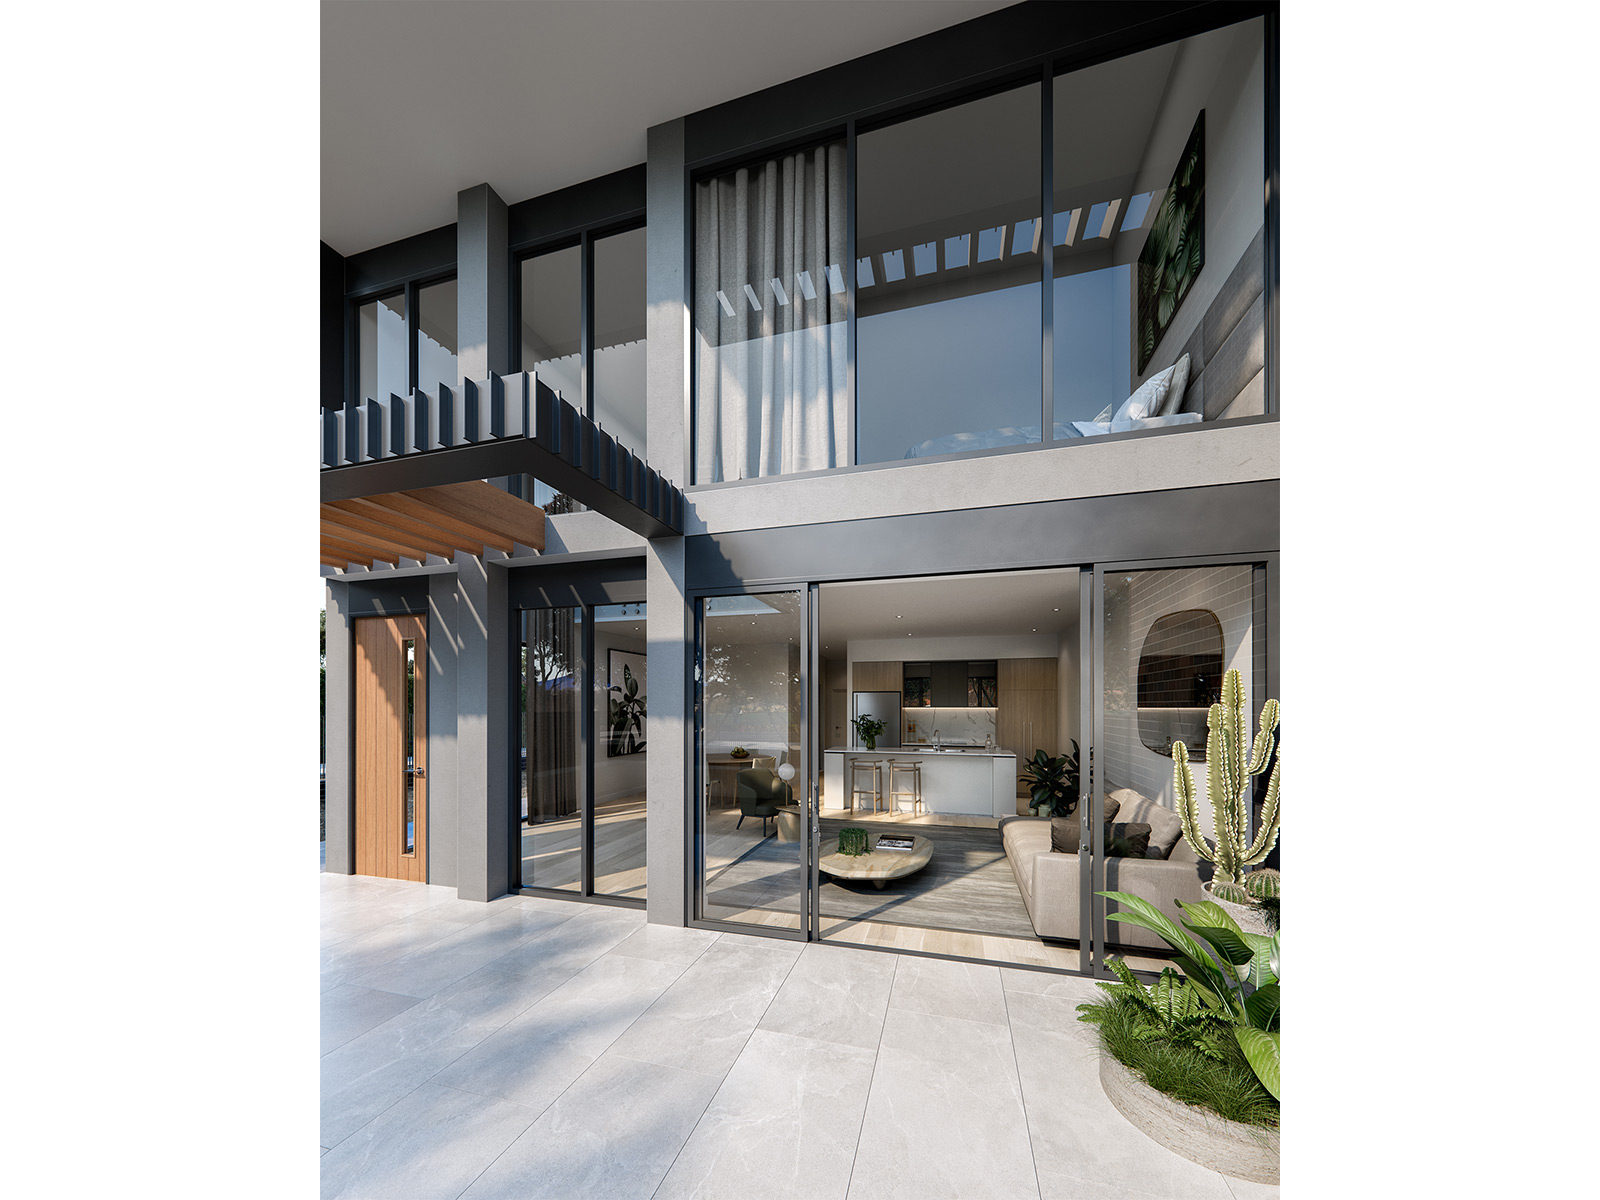 1_1_19030-kiara-narrabundah-cgi17-th-4b-courtyard-final-web